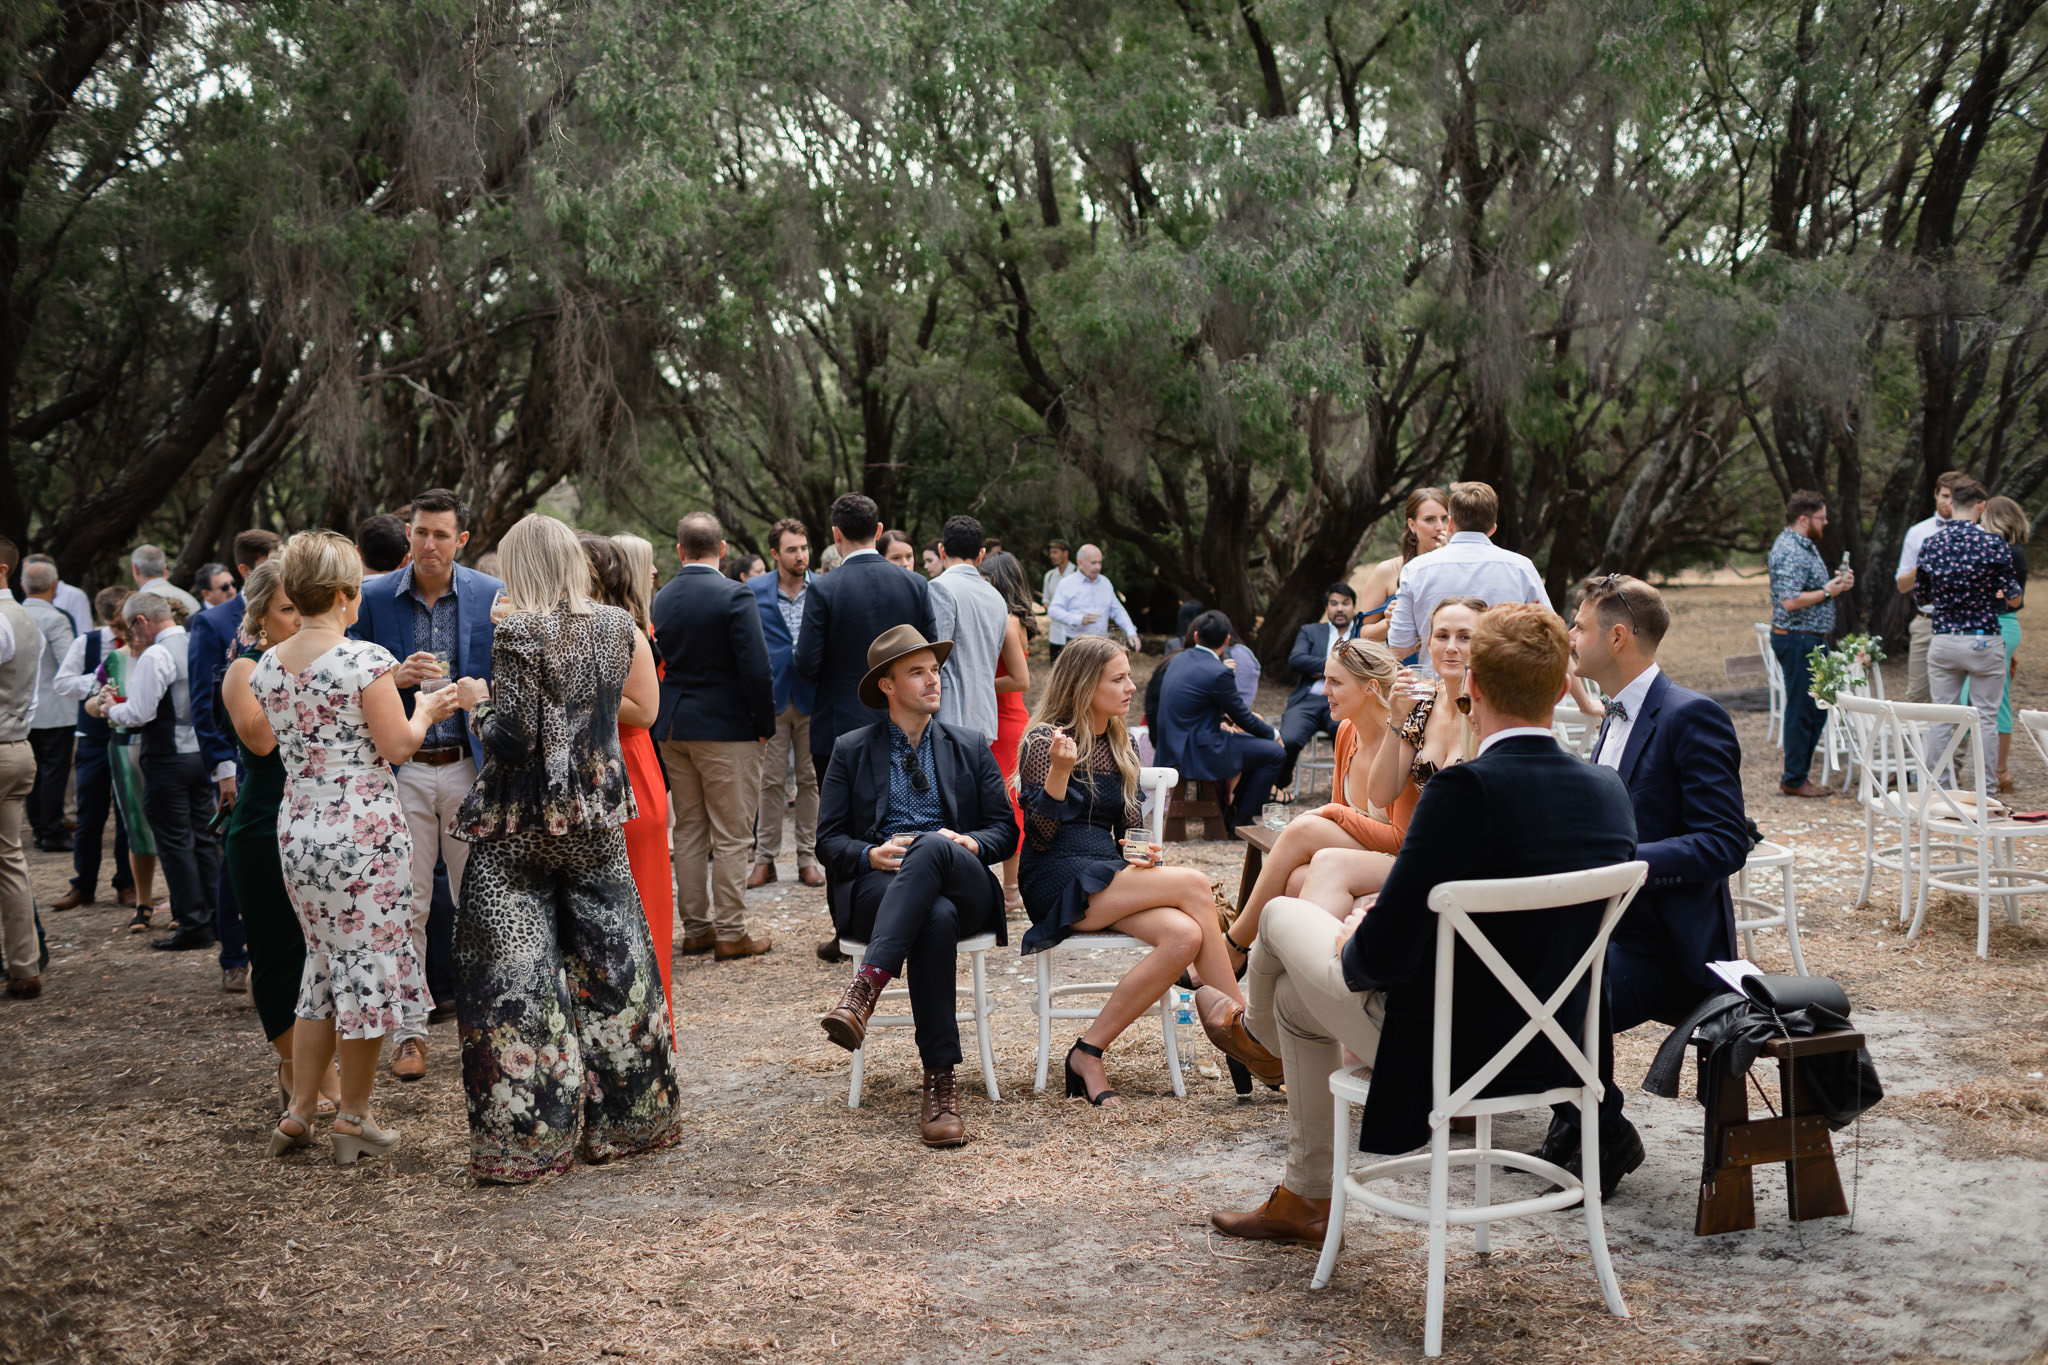 Wedding guests enjoying drinks after ceremony in a grove of peppermint tress at outdoor bush location in Australia